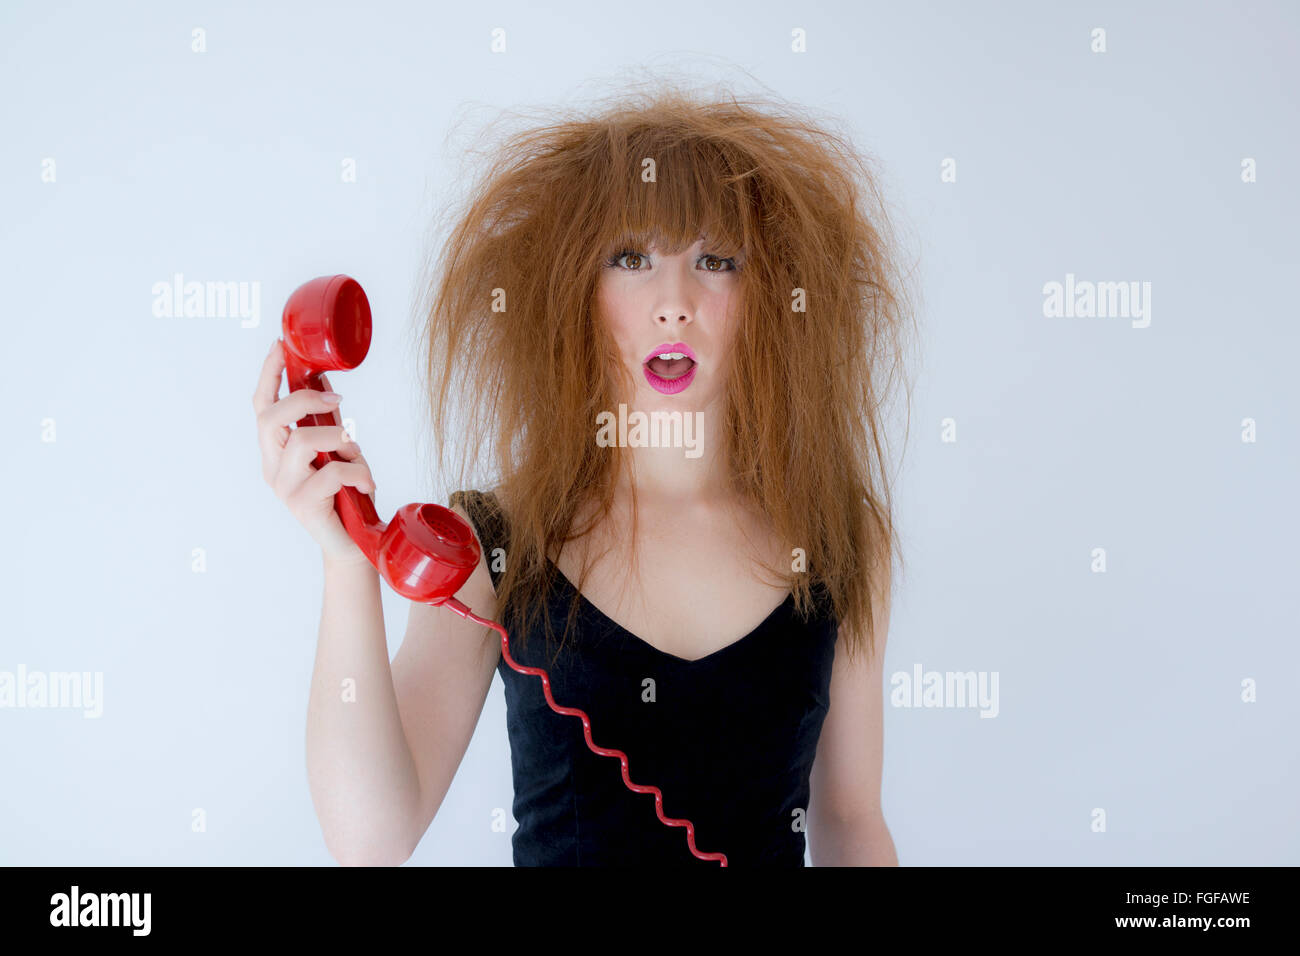 Woman with messy hair holding a red retro telephone with an expression of confusion - Stock Image